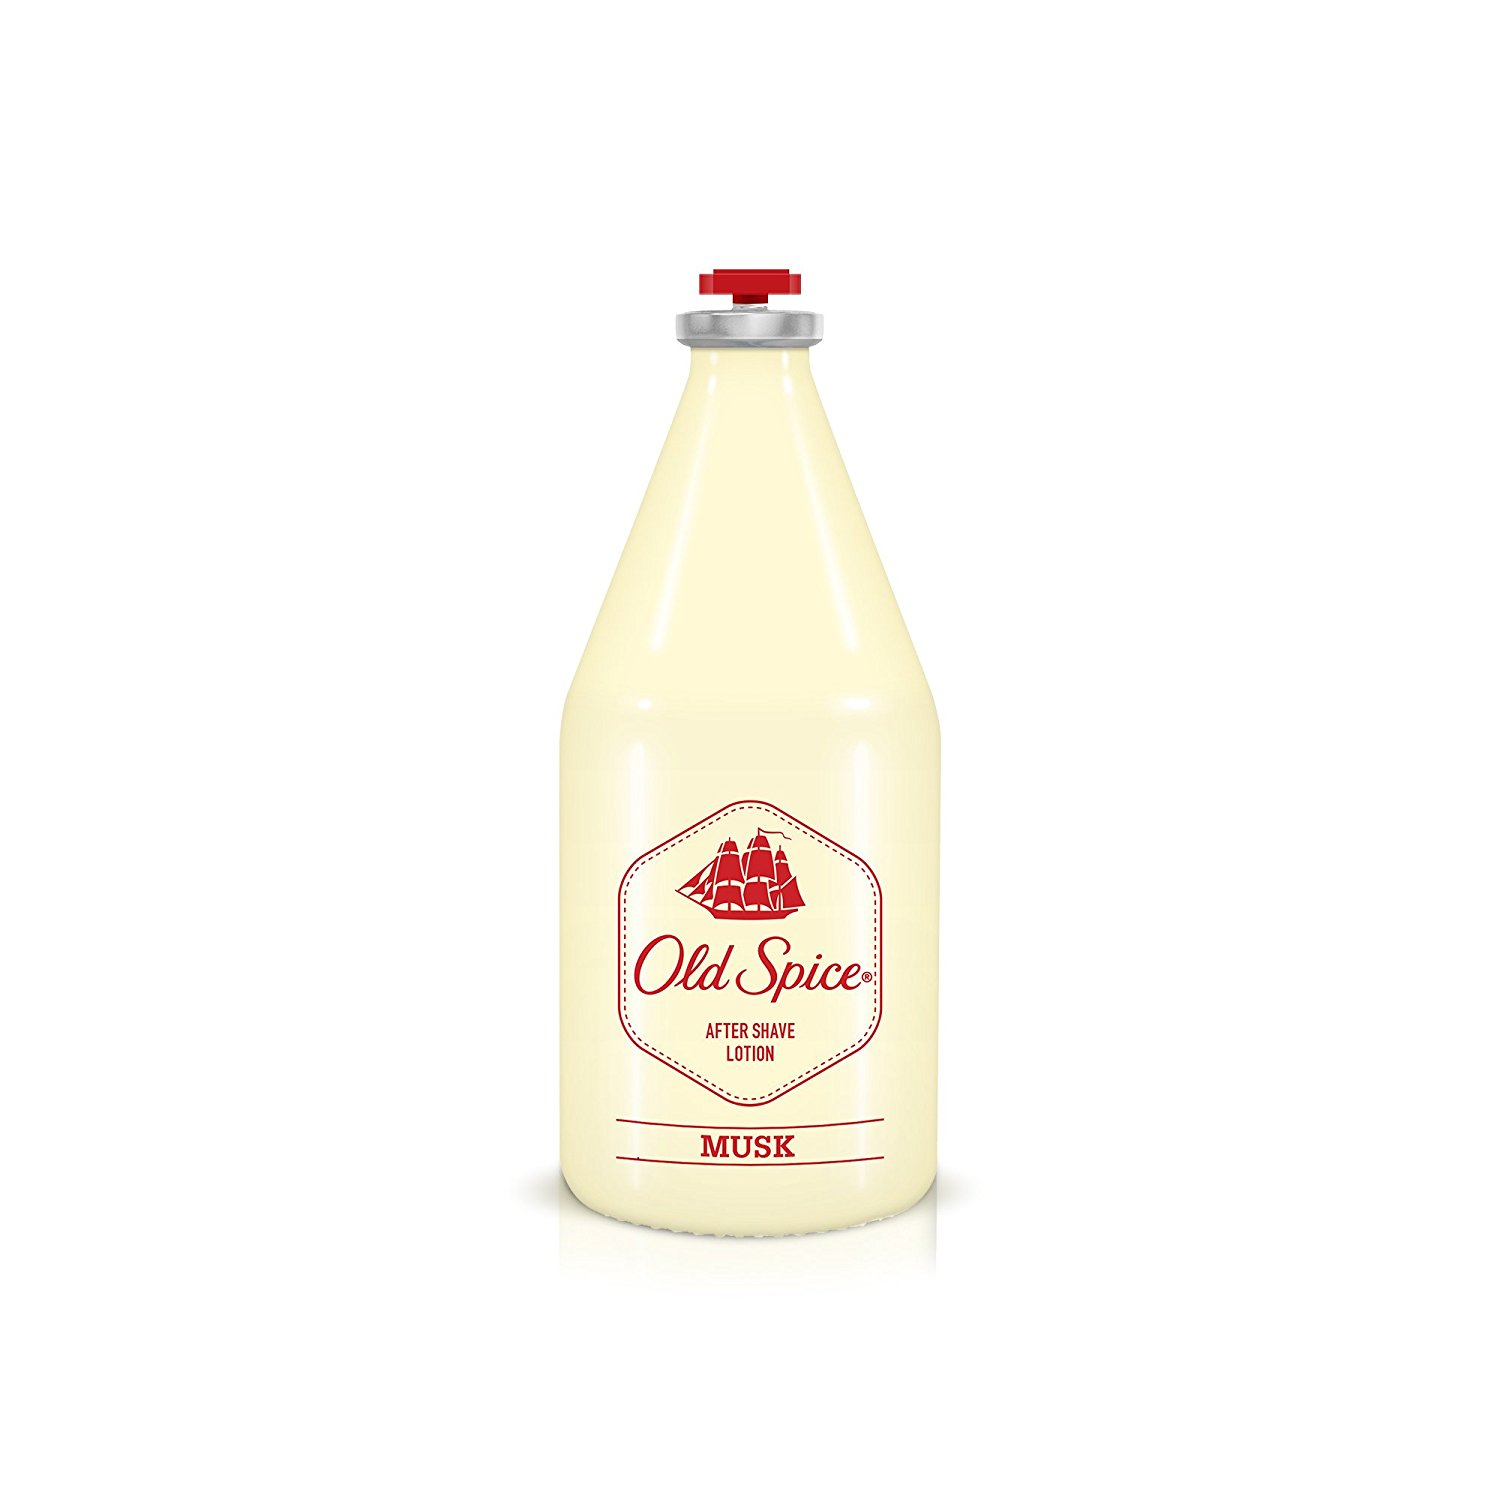 Buy Old Spice After Shave Lotion Splash Musk online Italy [ IT ]